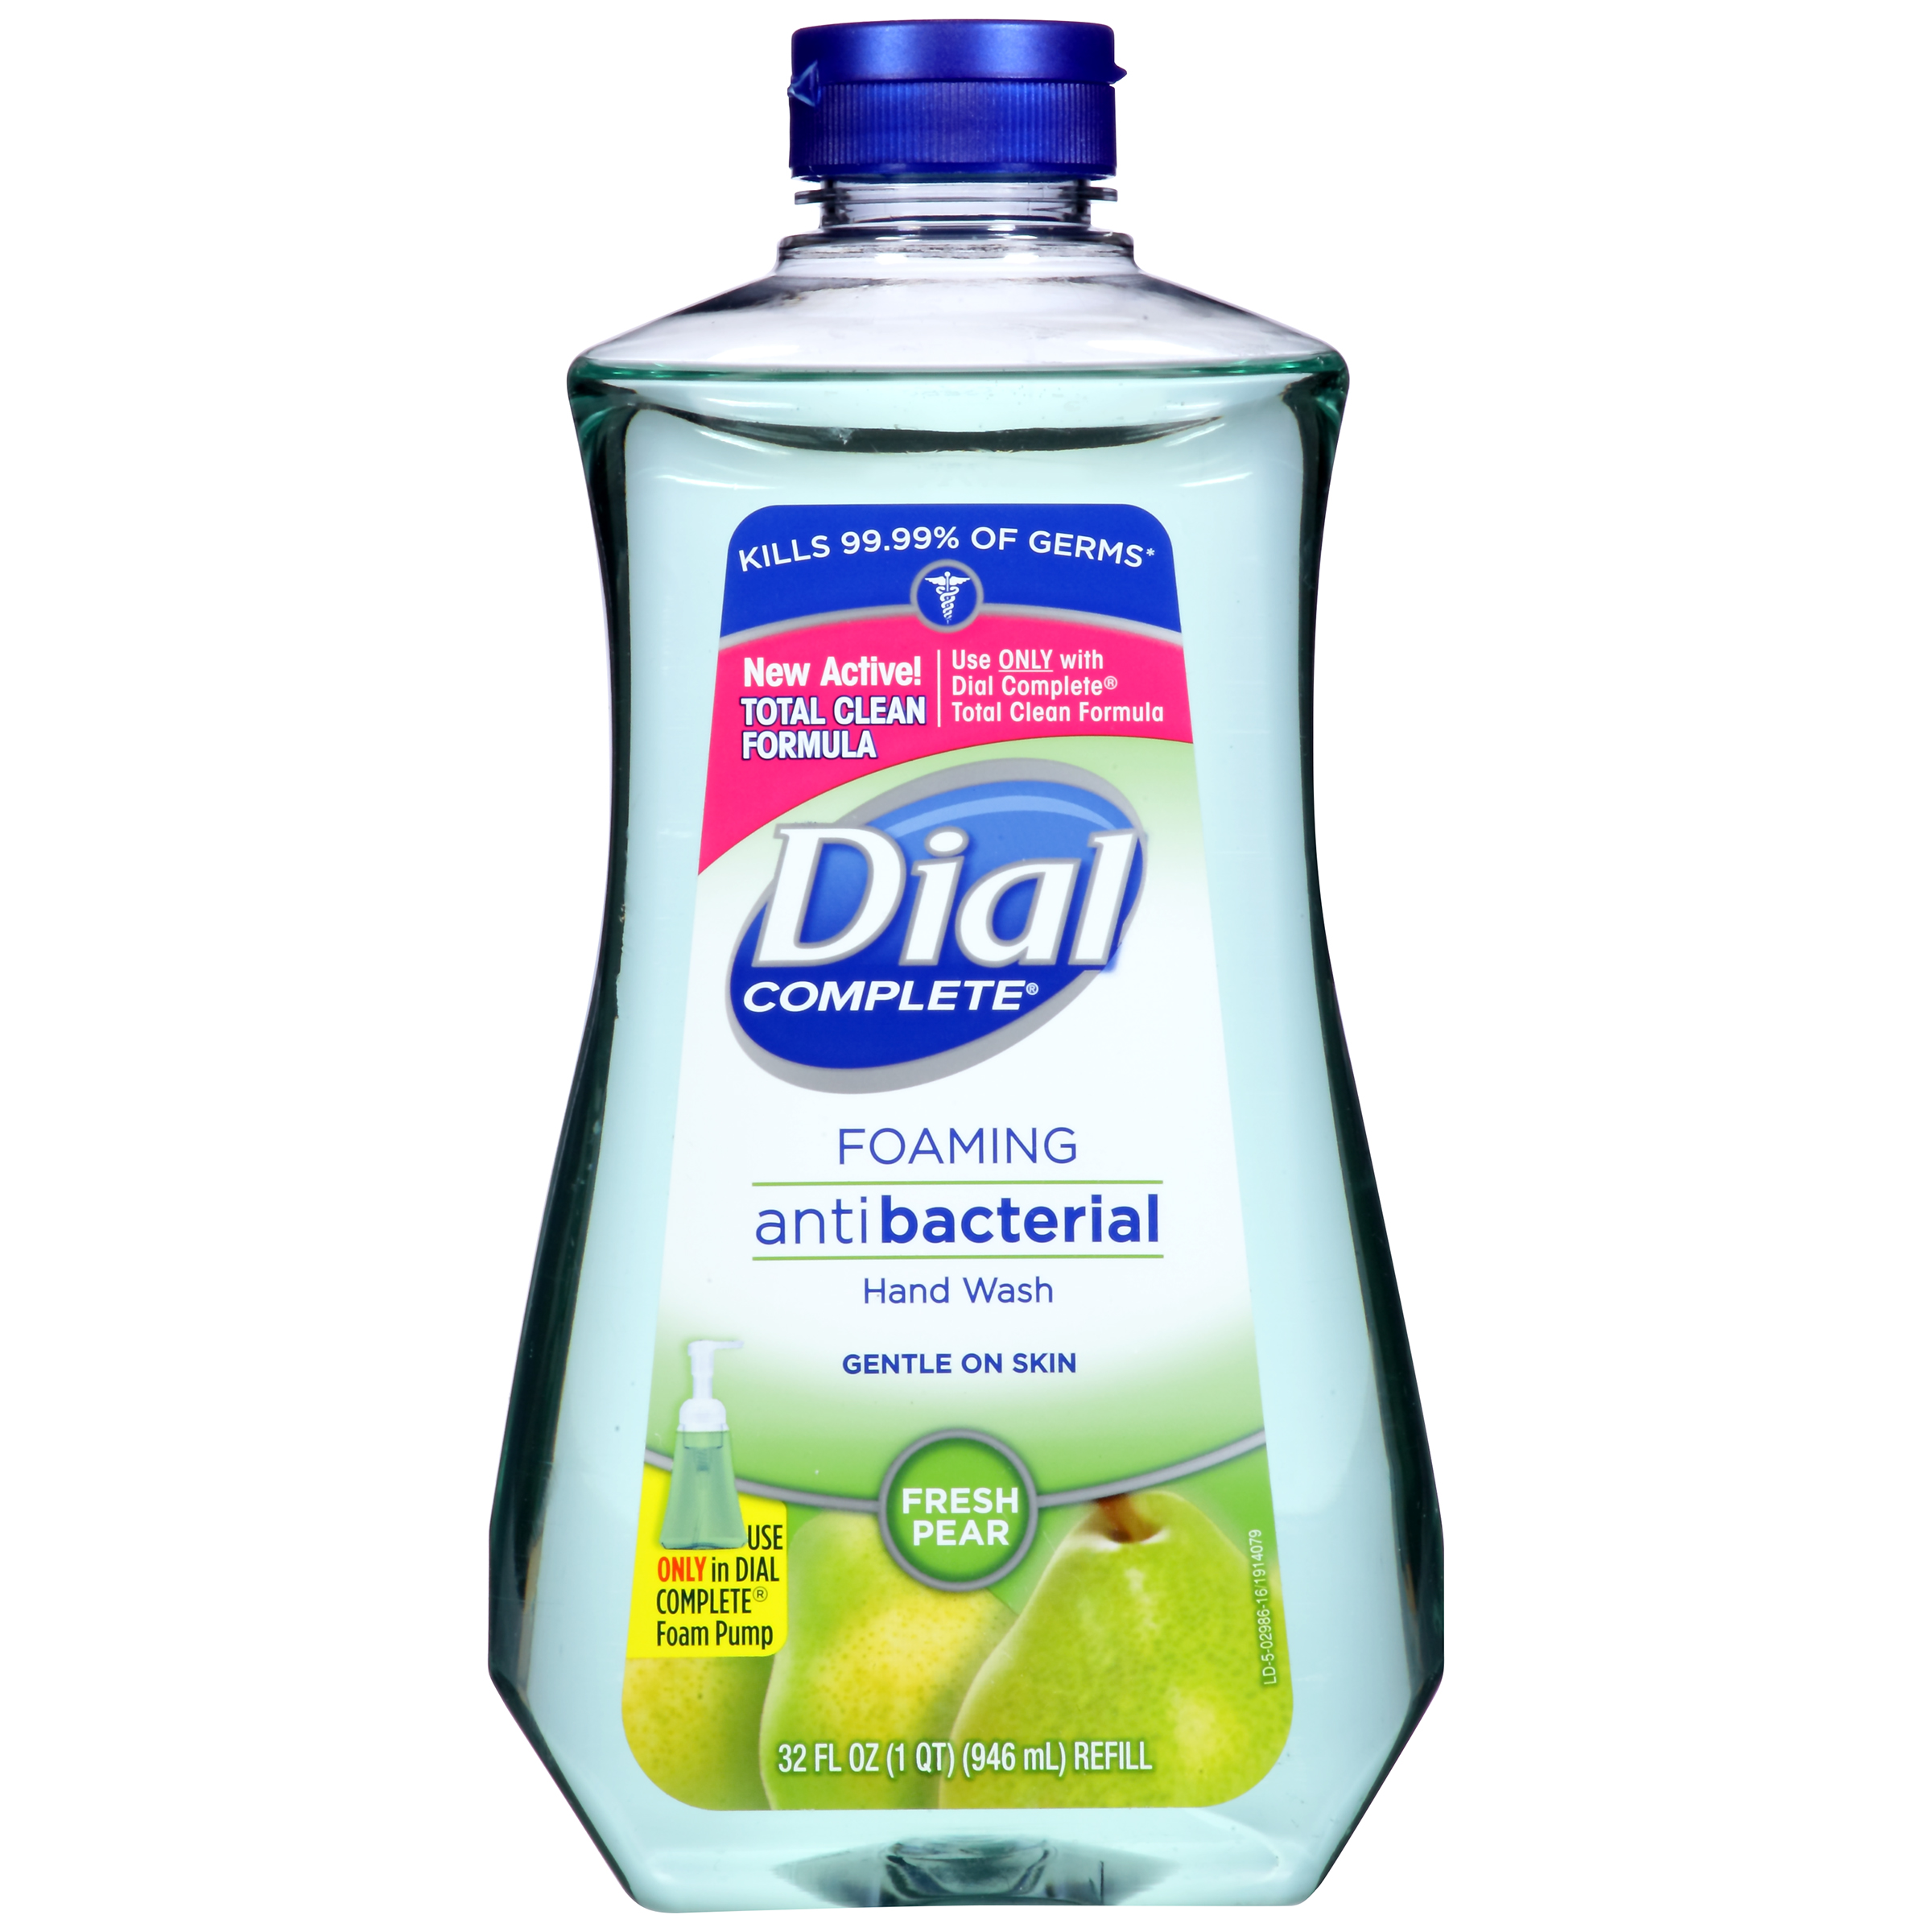 Dial Complete Antibacterial Foaming Hand Wash Refill, Fresh Pear, 32 Ounce